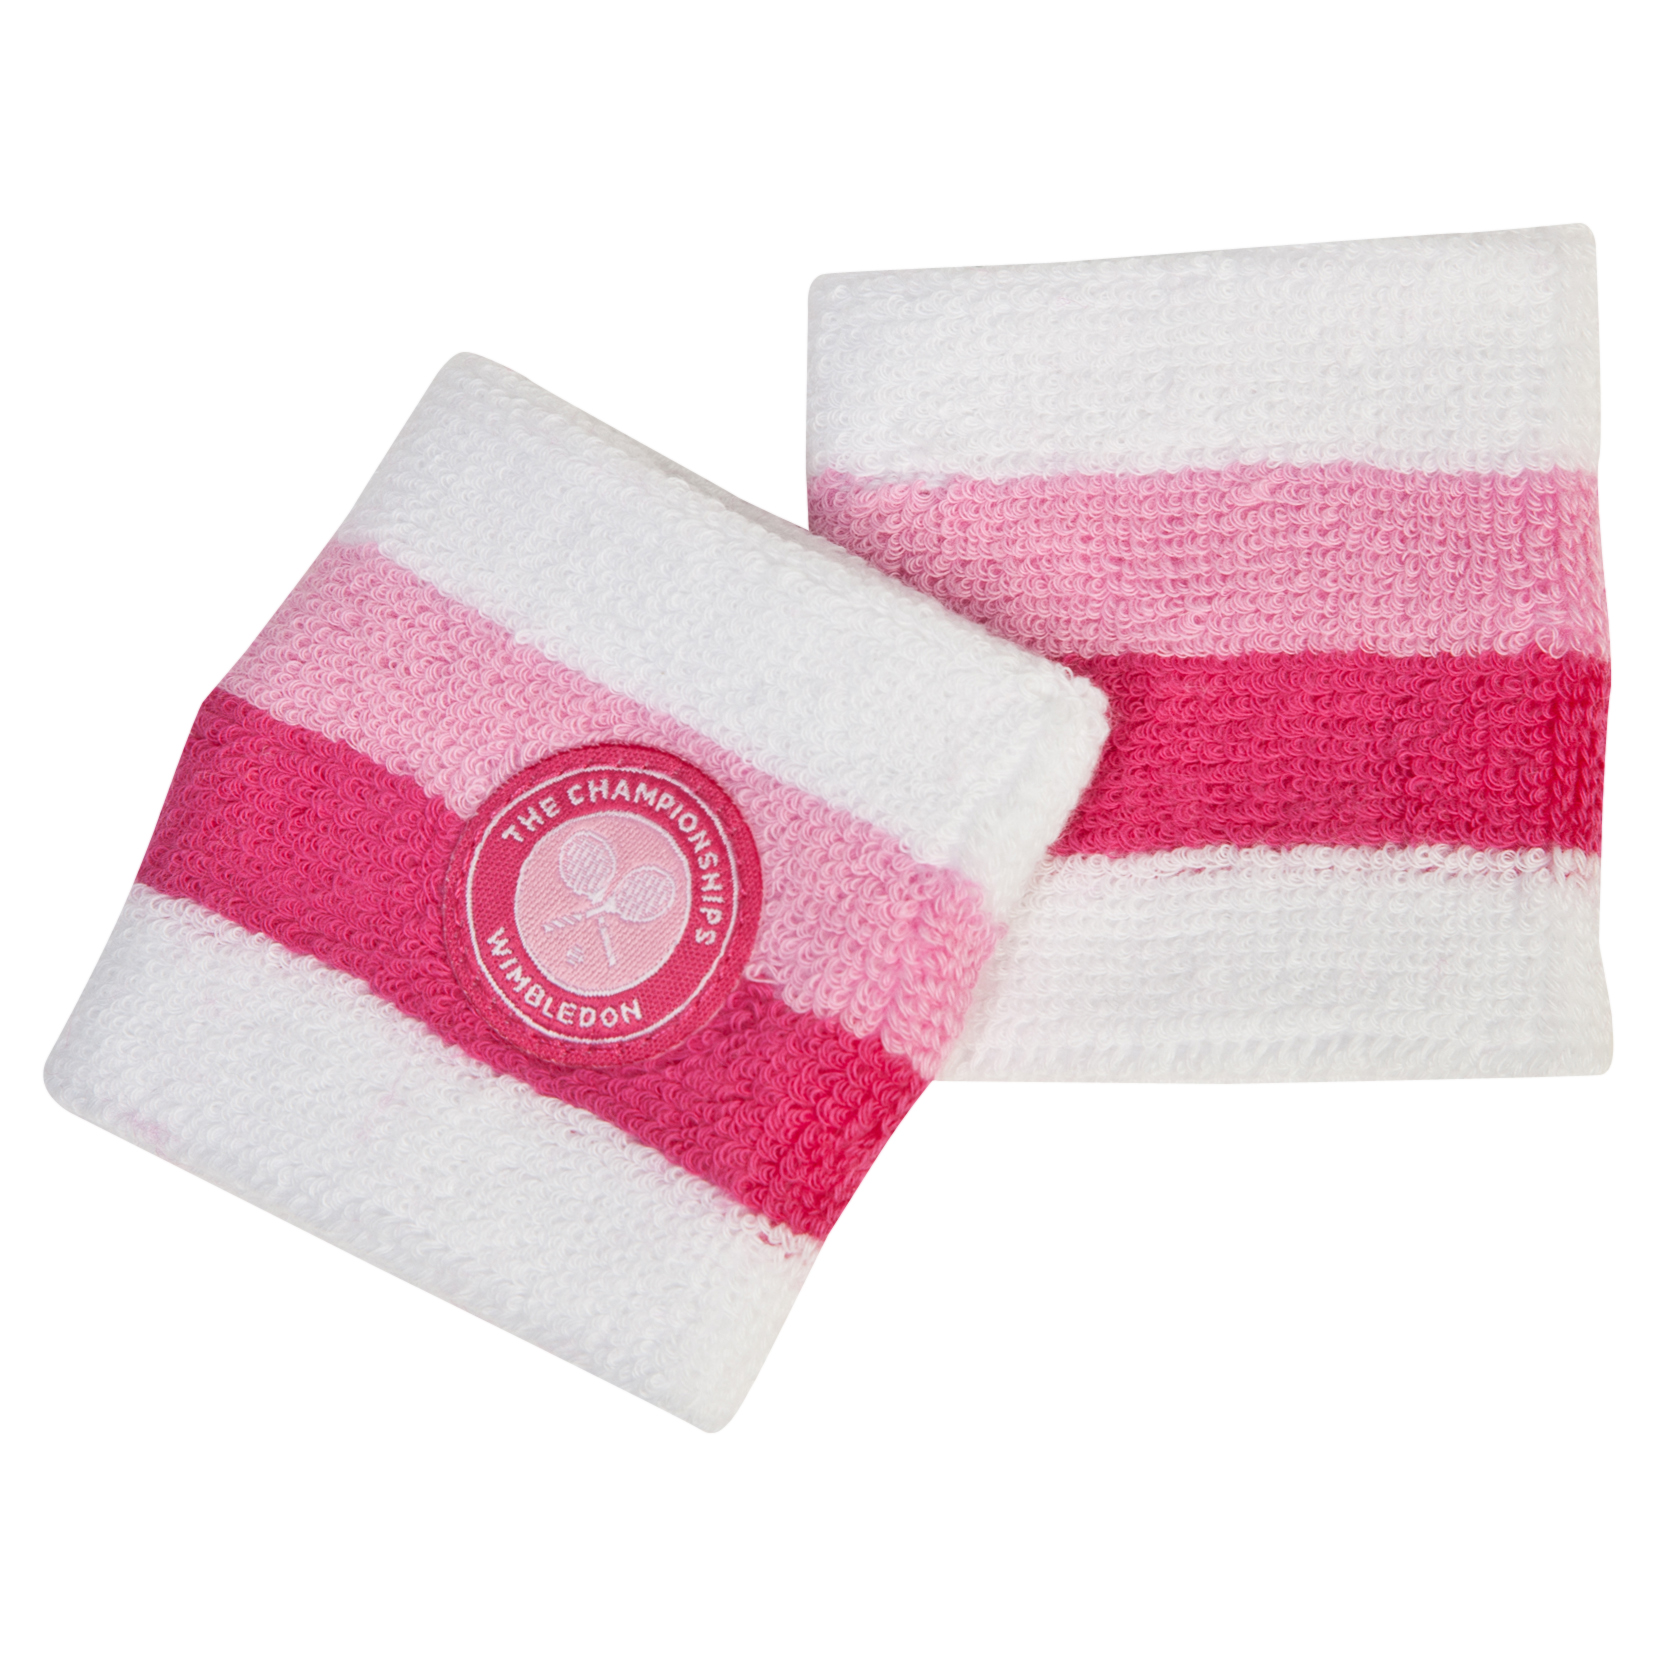 Wimbledon Strawberry Wristband - Girls White